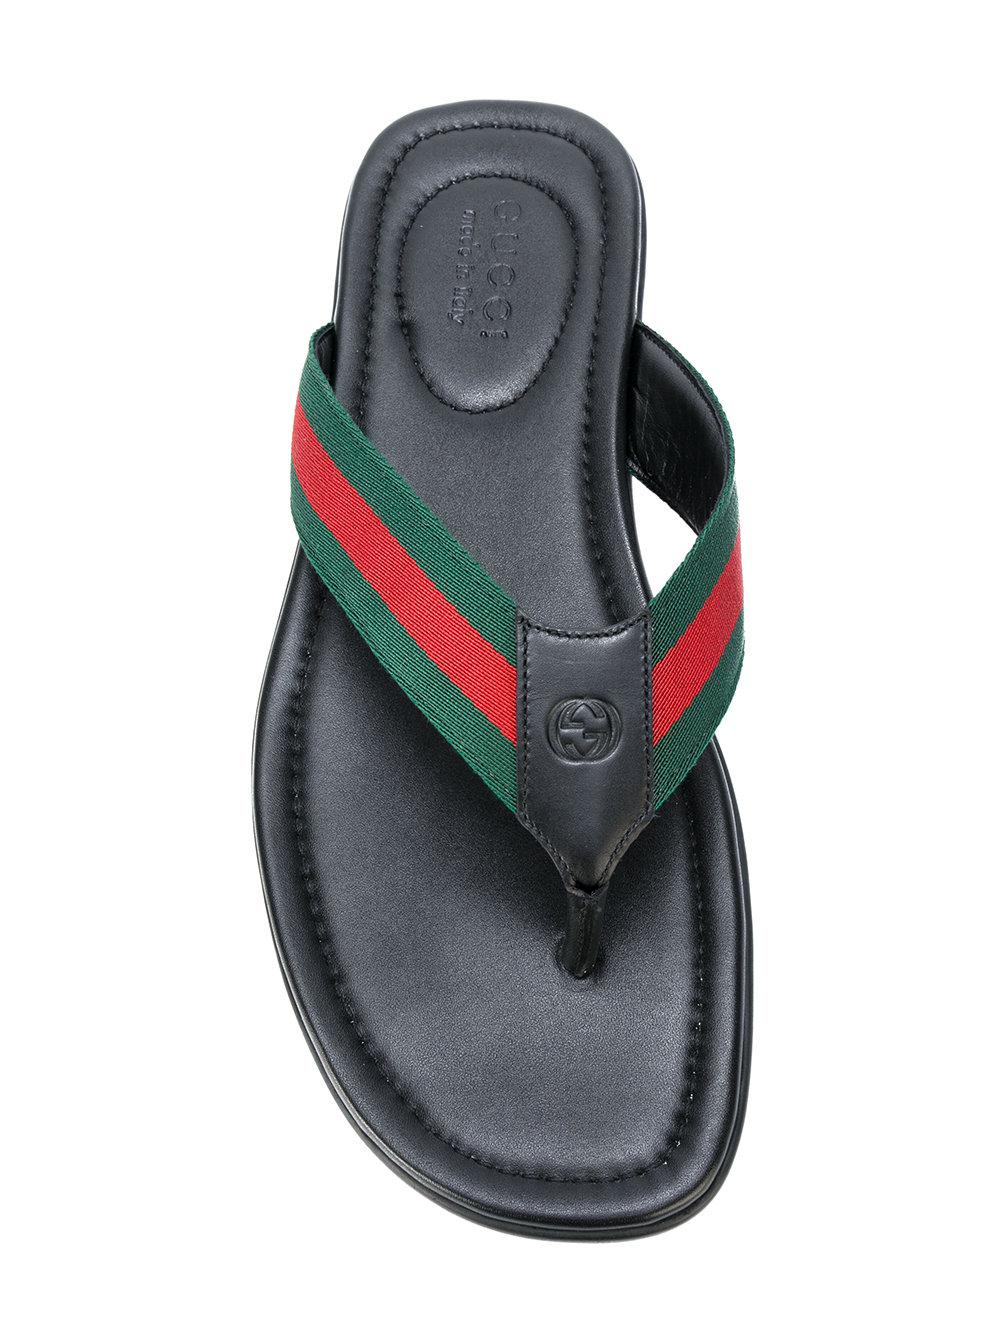 3c1d7564382fc1 Gucci Web And Leather Thong Sandal in Black for Men - Lyst